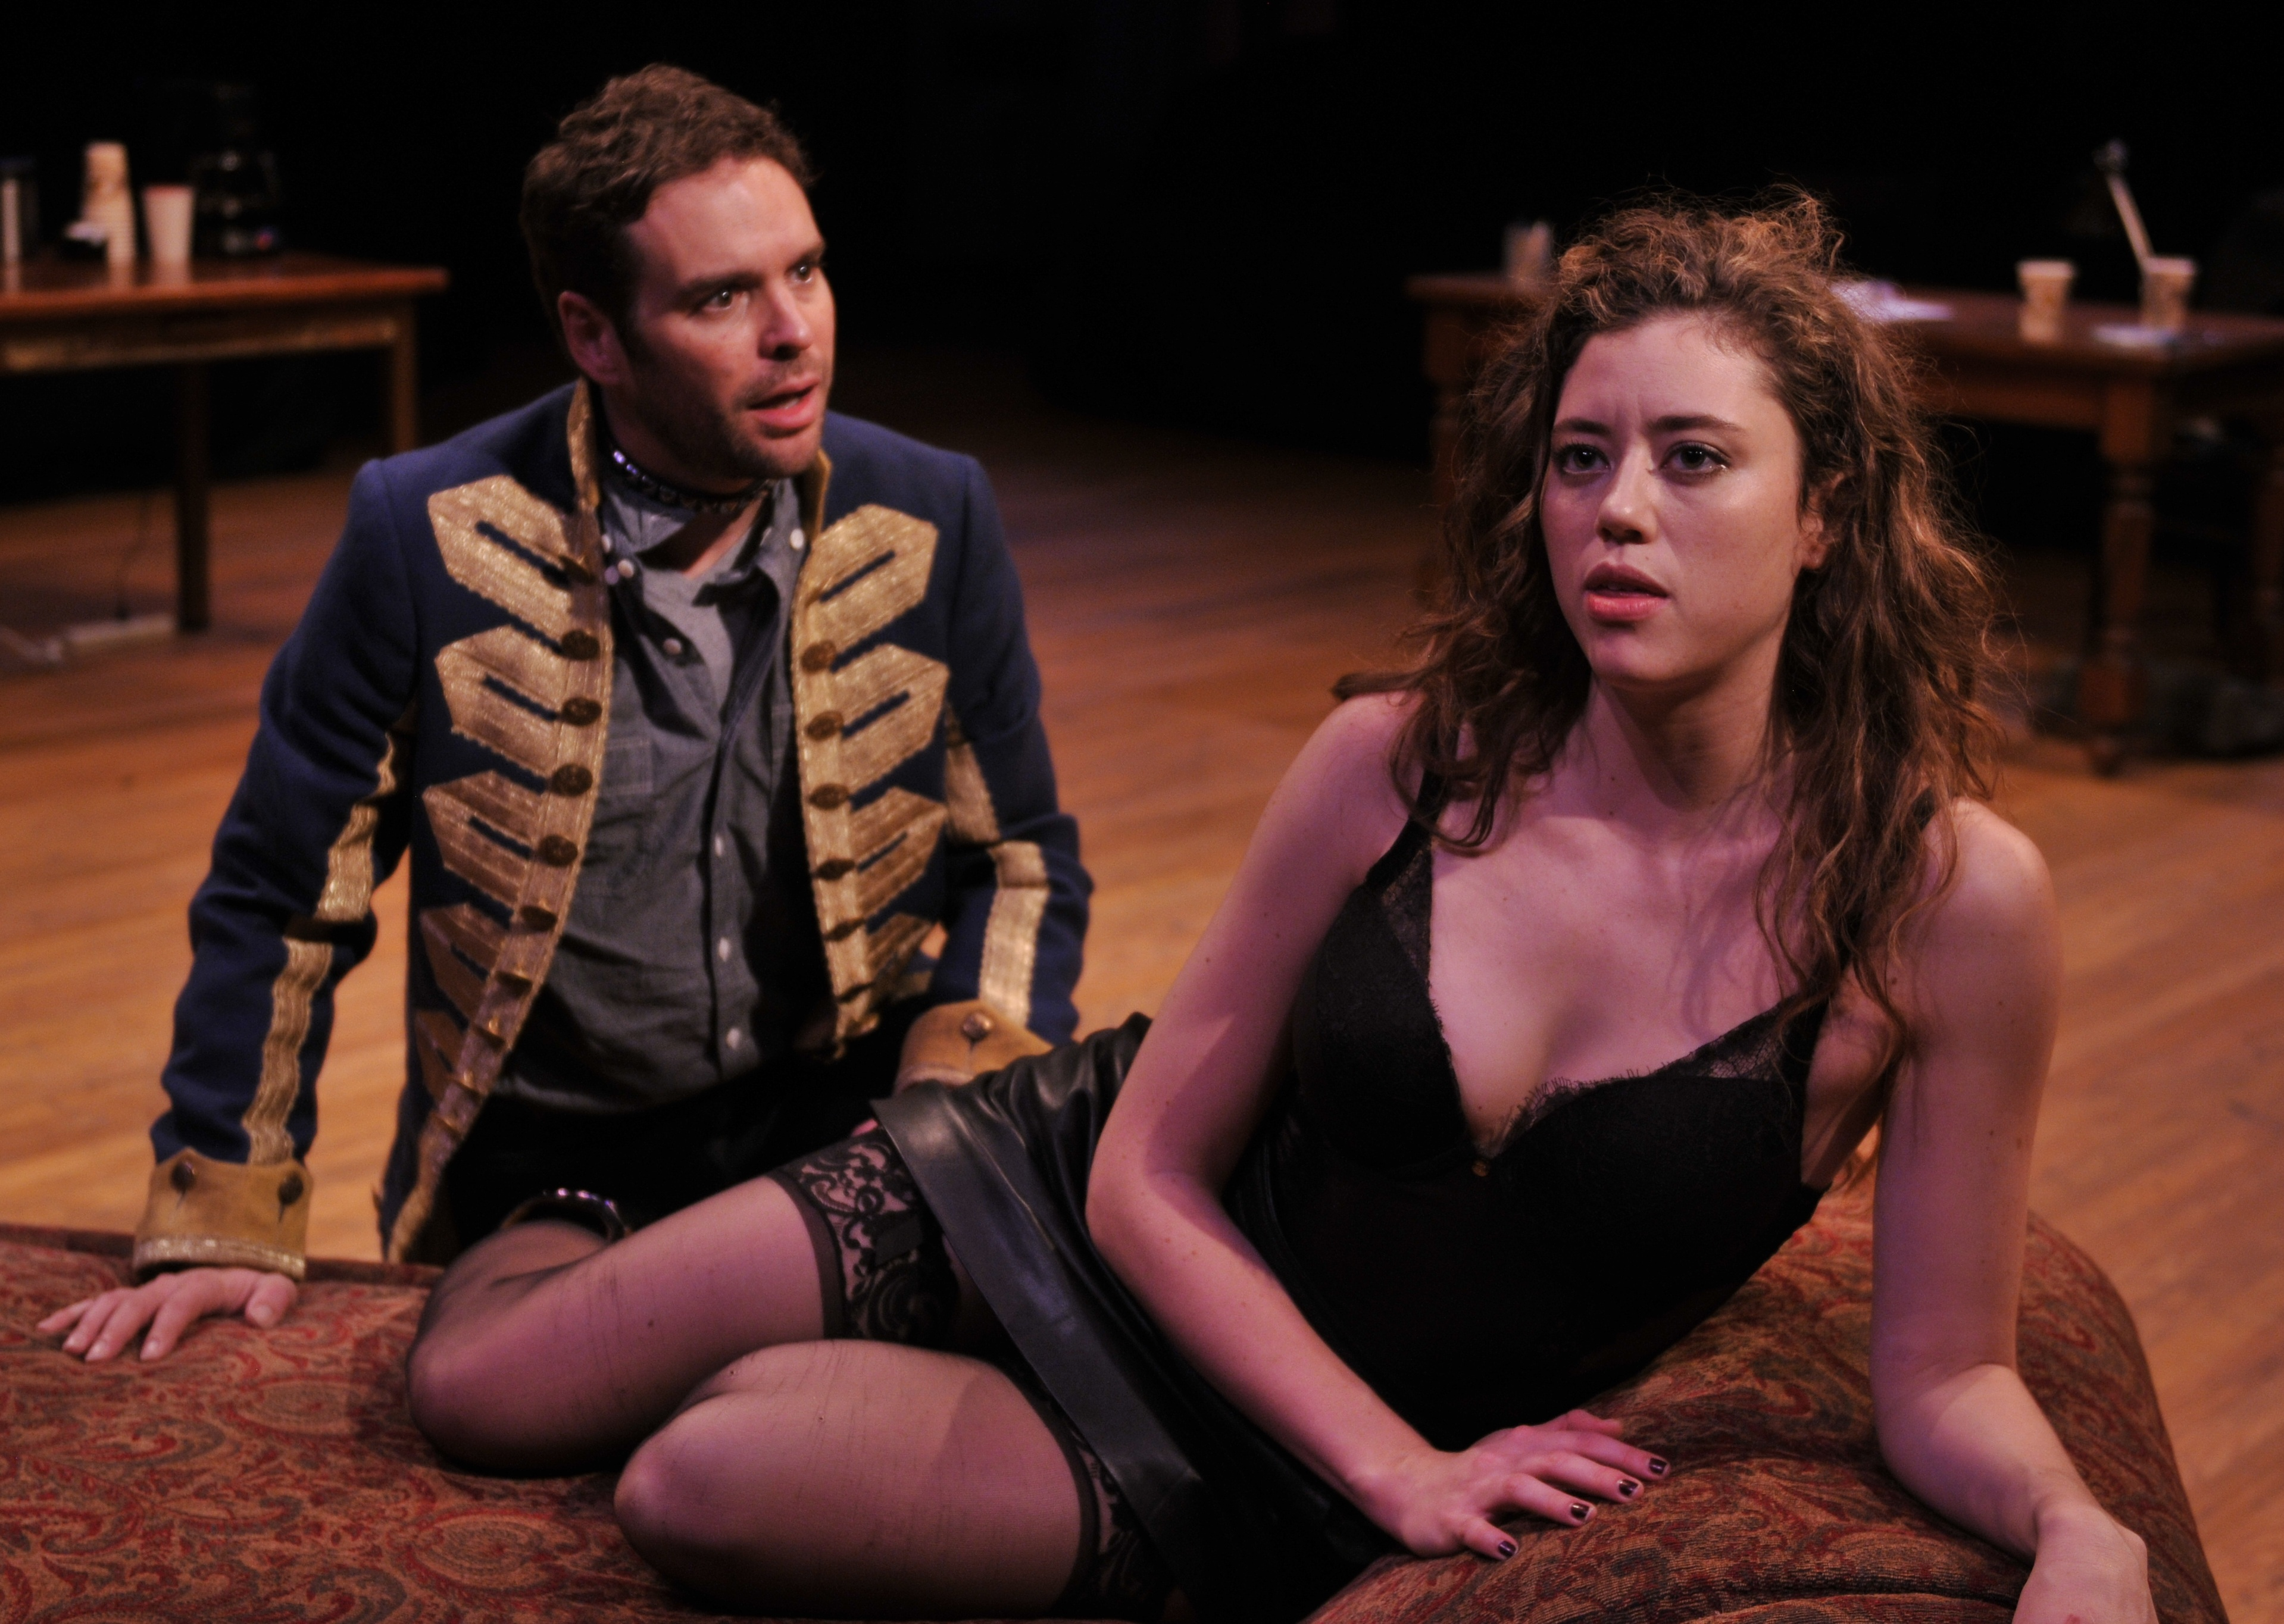 BWW Reviews: The Alley Theatre's VENUS IN FUR is Riveting, Erotic Comedy